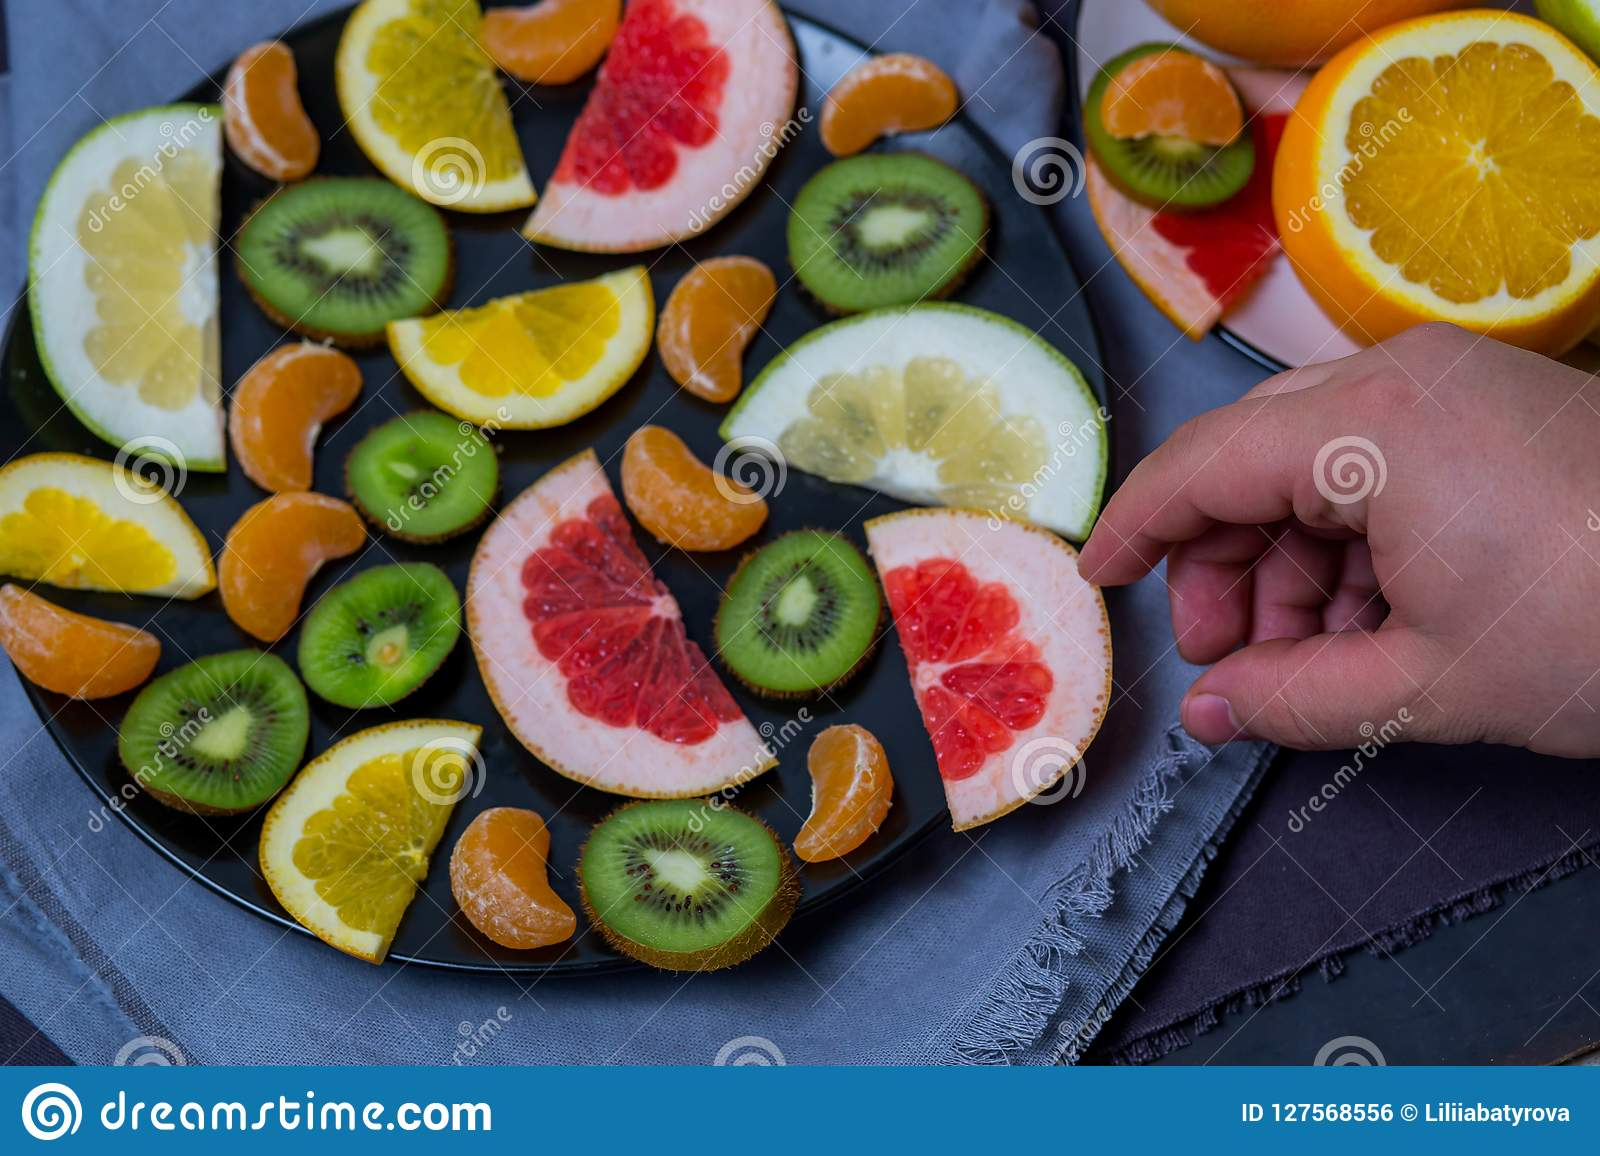 Bright ripe delicious fruits citrus oranges cut in a large black plate on a blue fabric background kitchen towels men`s hand